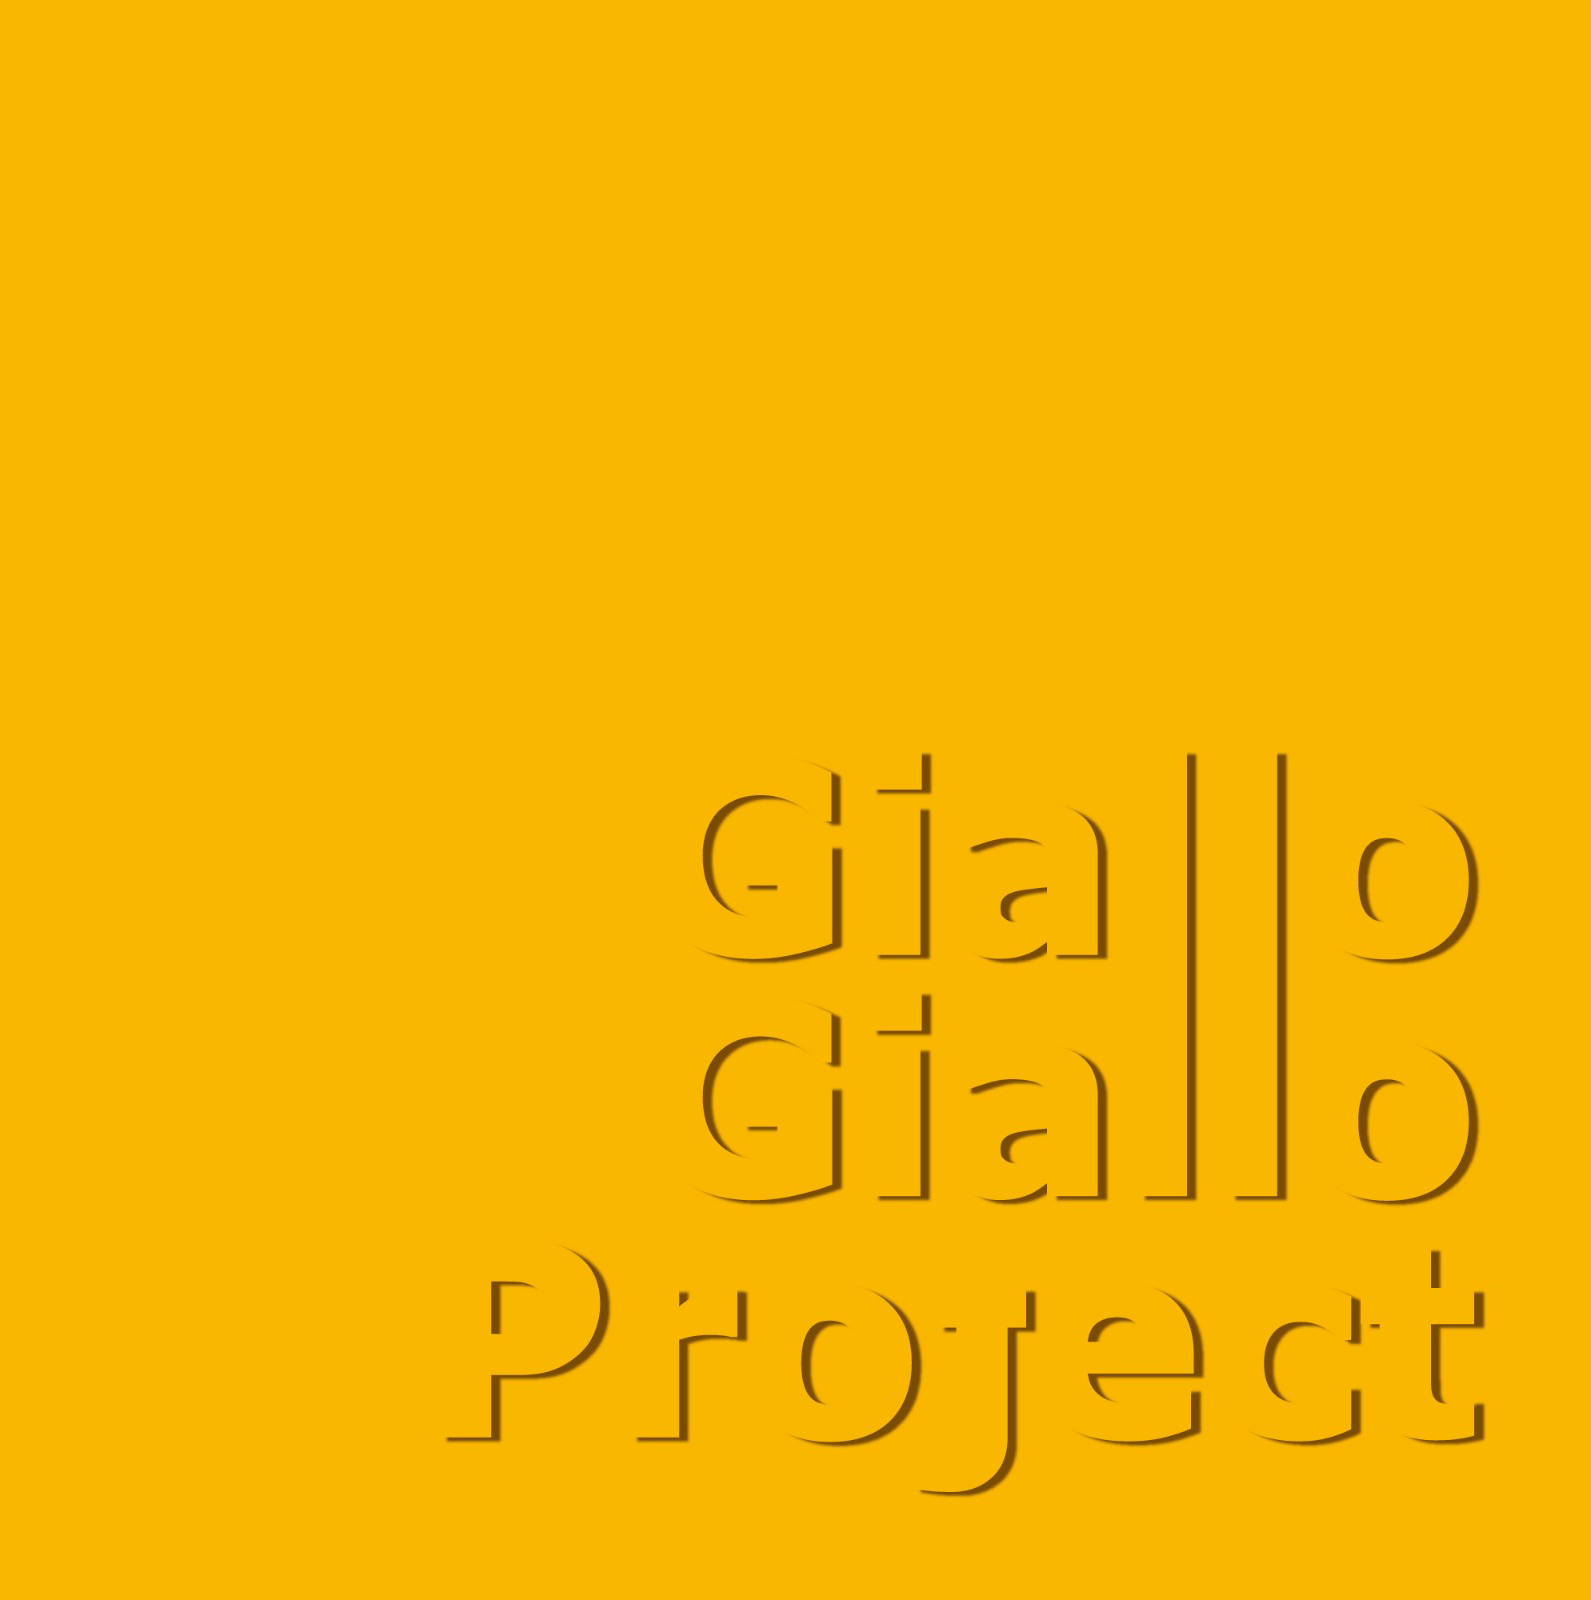 Giallo Giallo Project